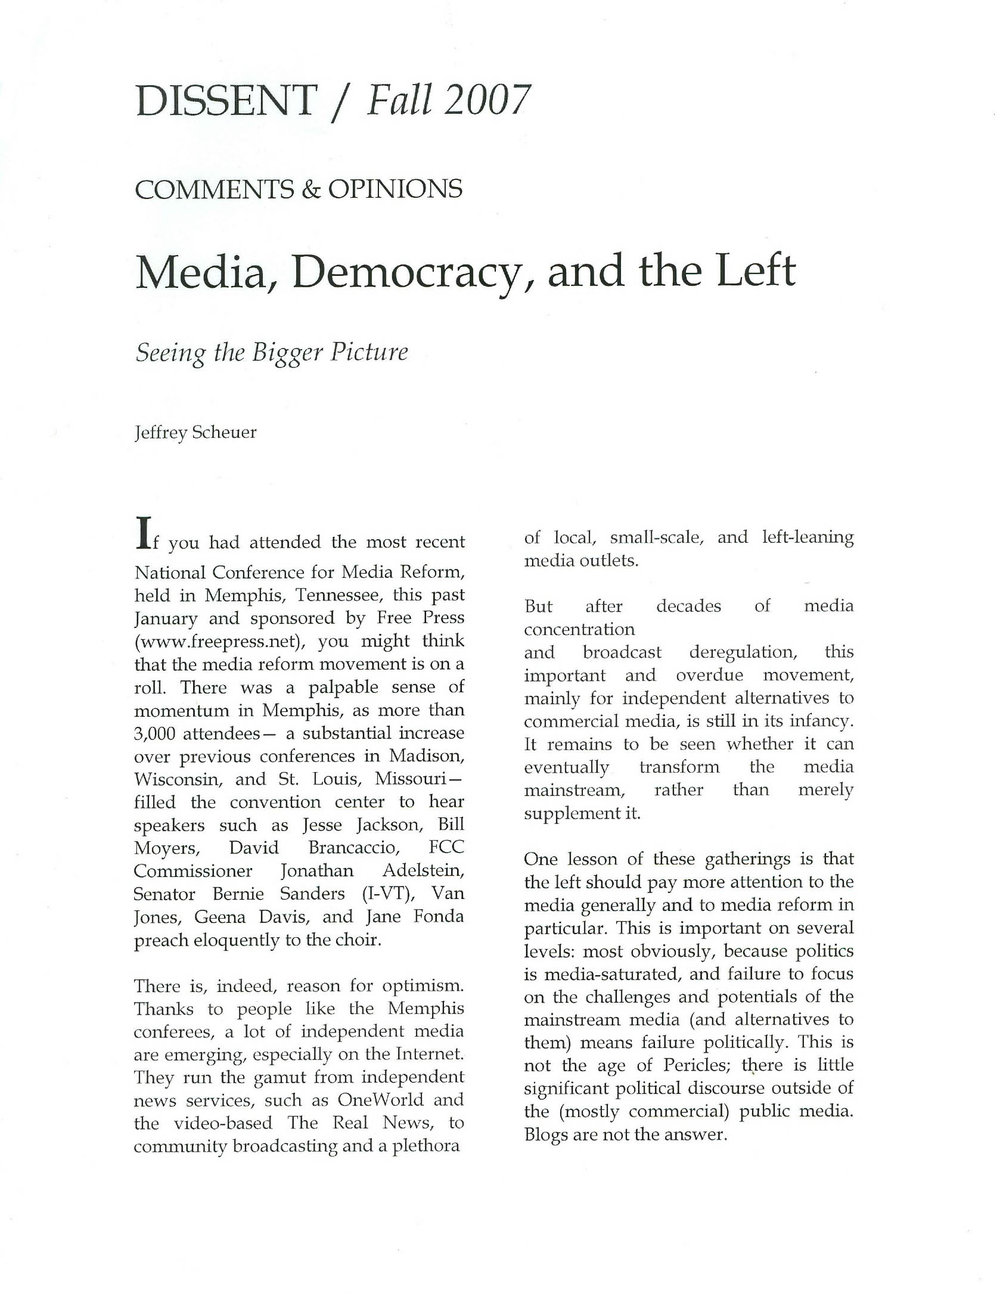 Media-and-Democracy1.jpg